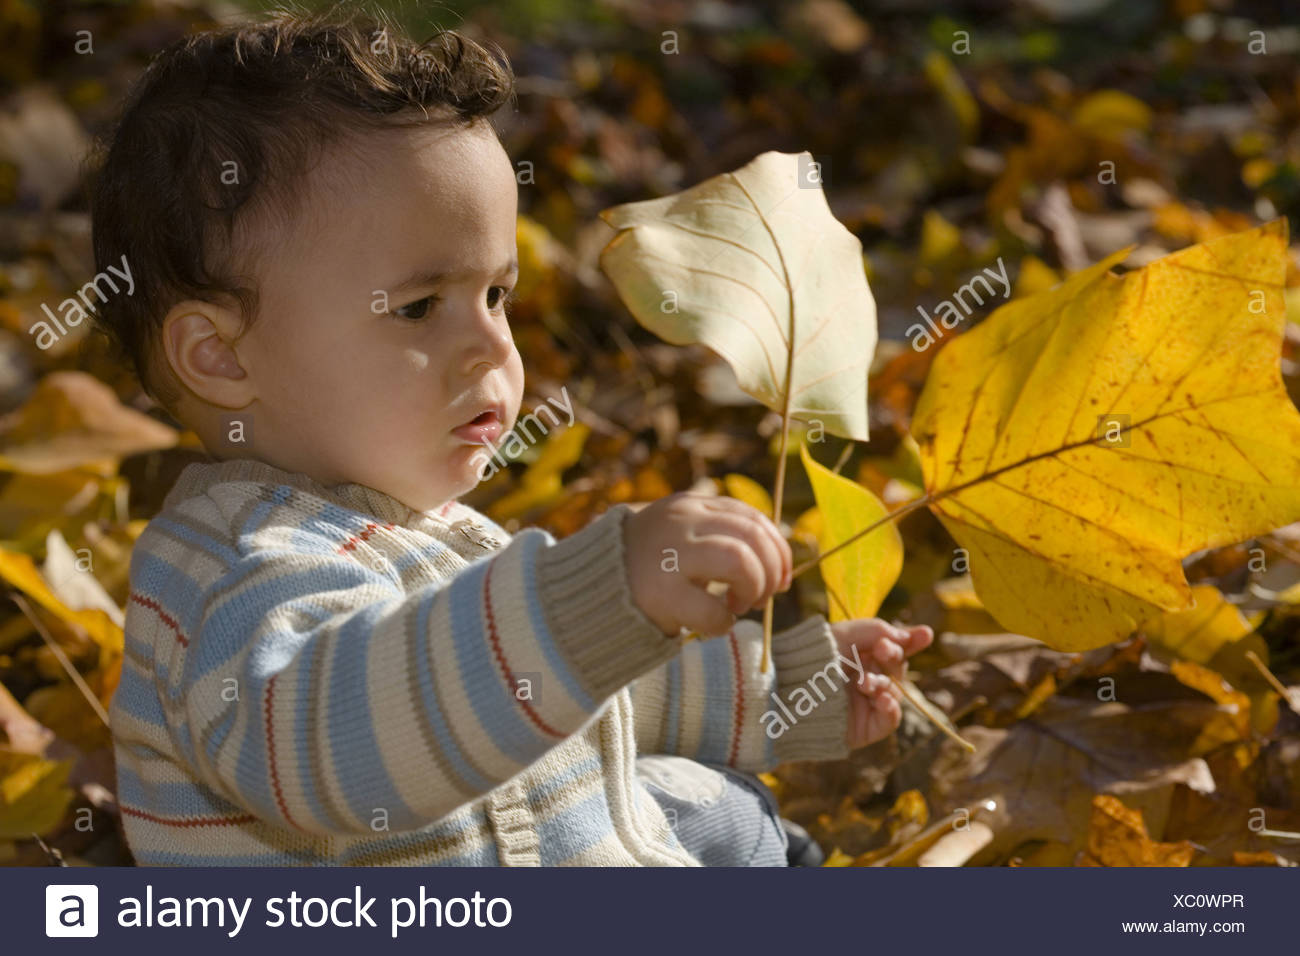 Child playing with autumn foliage, Muenchen, Bavaria, Germany - Stock Image